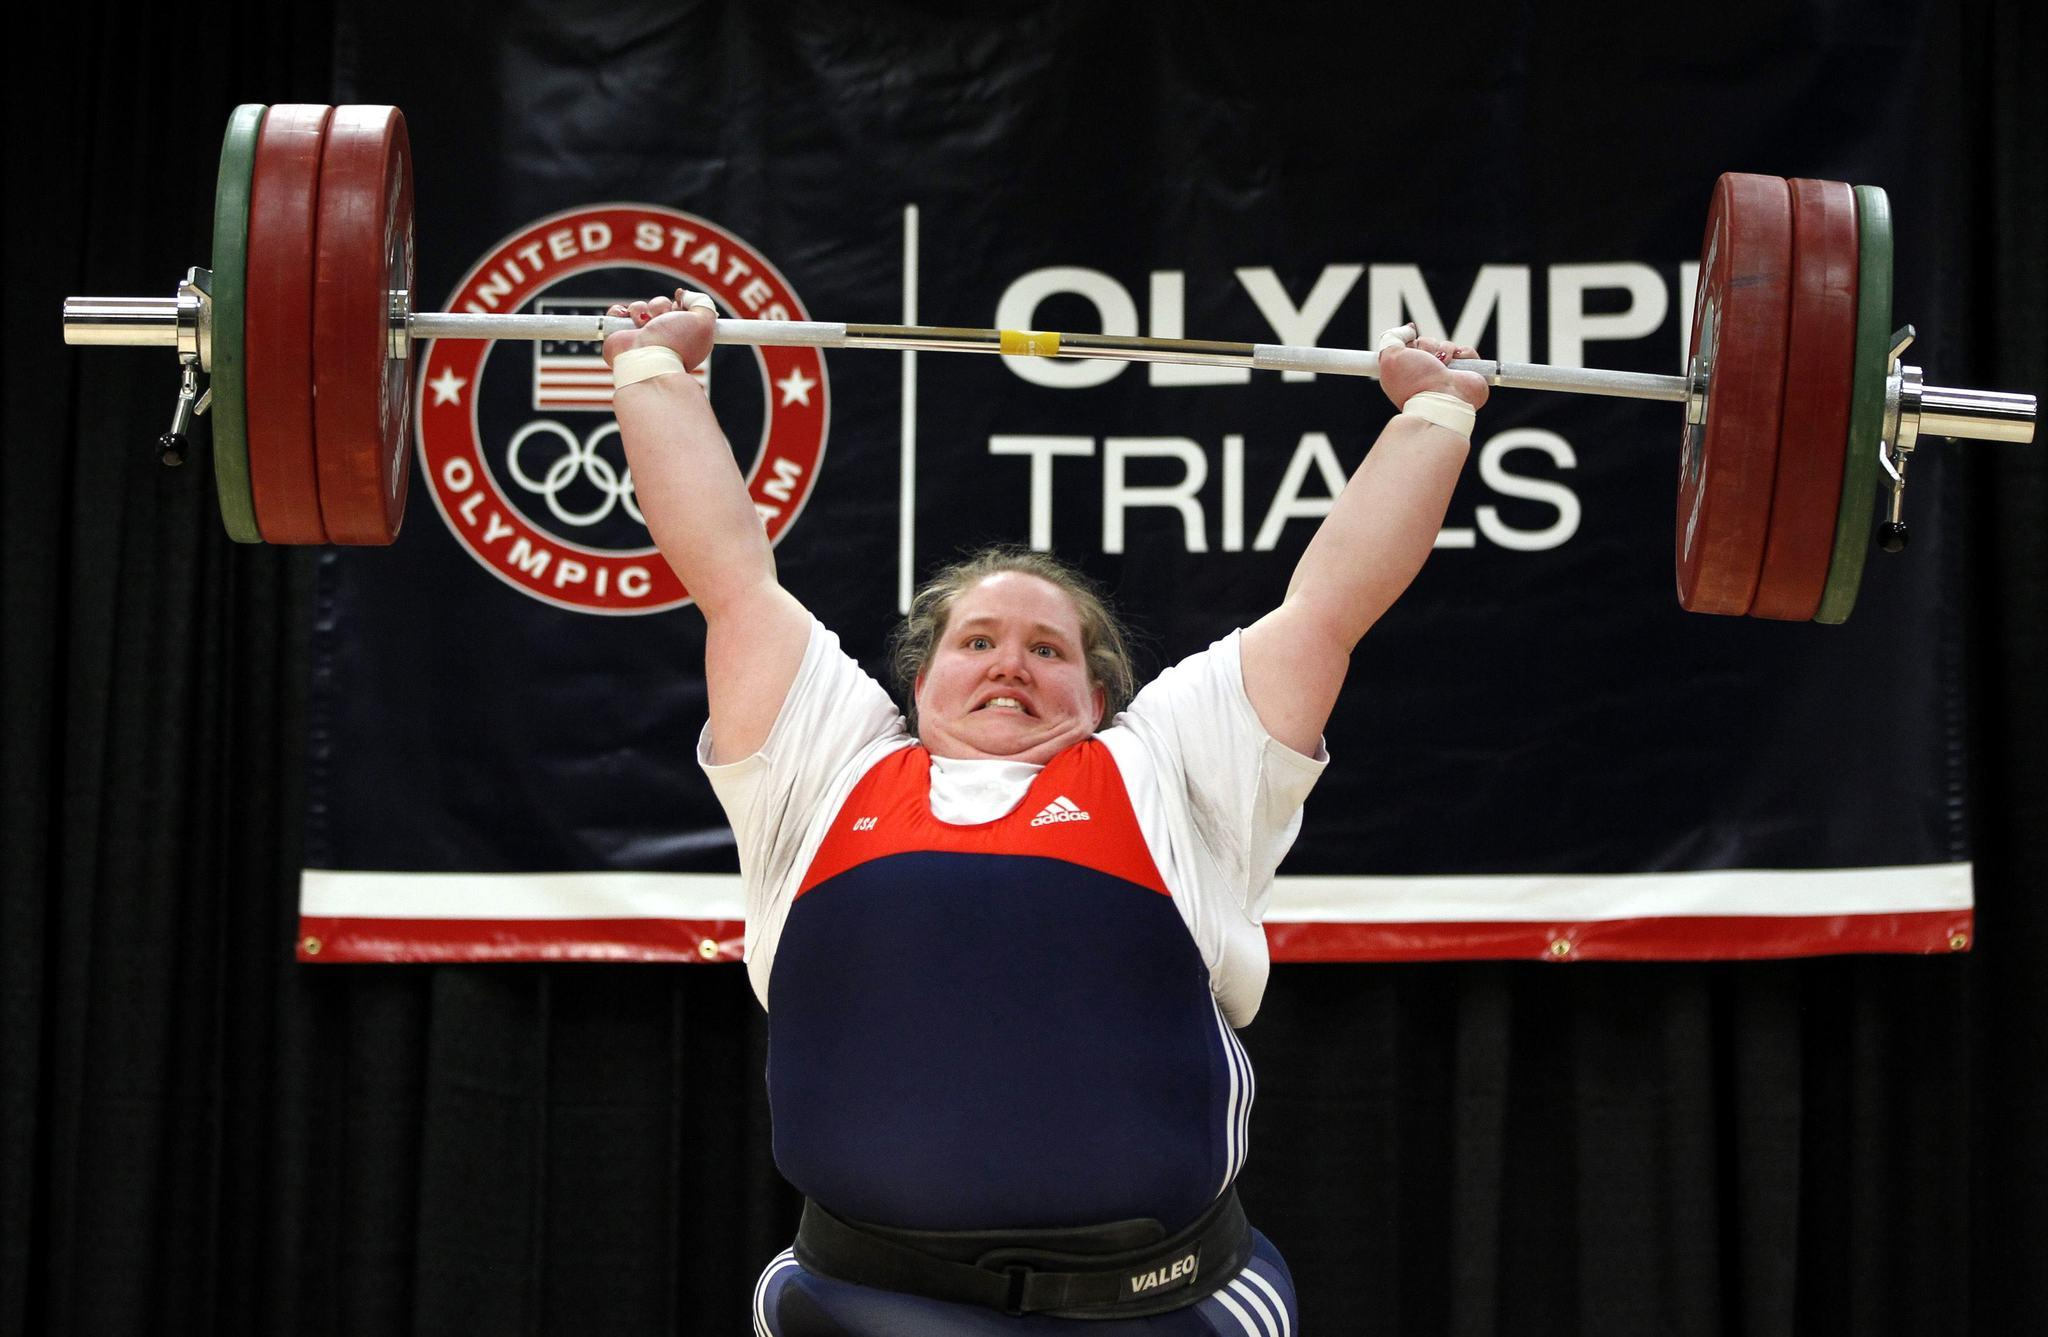 Holley Mangold of the U.S. performs her 145 kg weightlifting clean and jerk lift during the 2012 U.S. Olympic Trials at the Arnold Sports Festival in Columbus, Ohio, March 4, 2012.